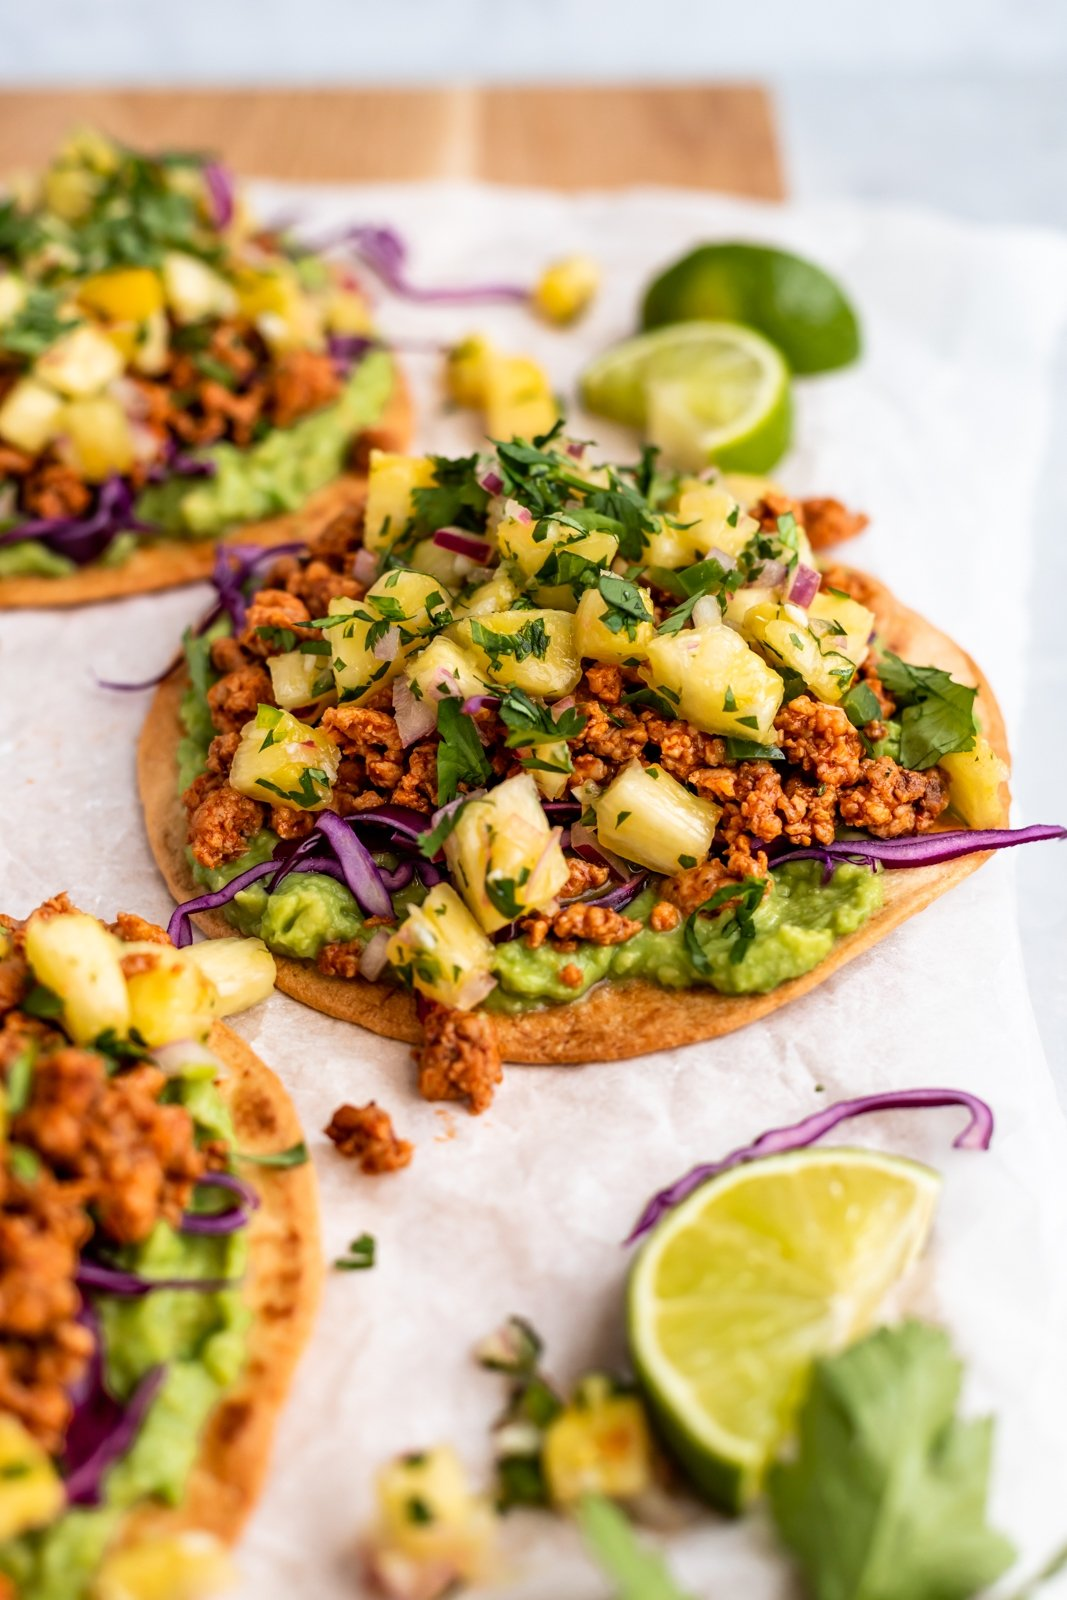 chipotle chicken tostada topped with pineapple salsa